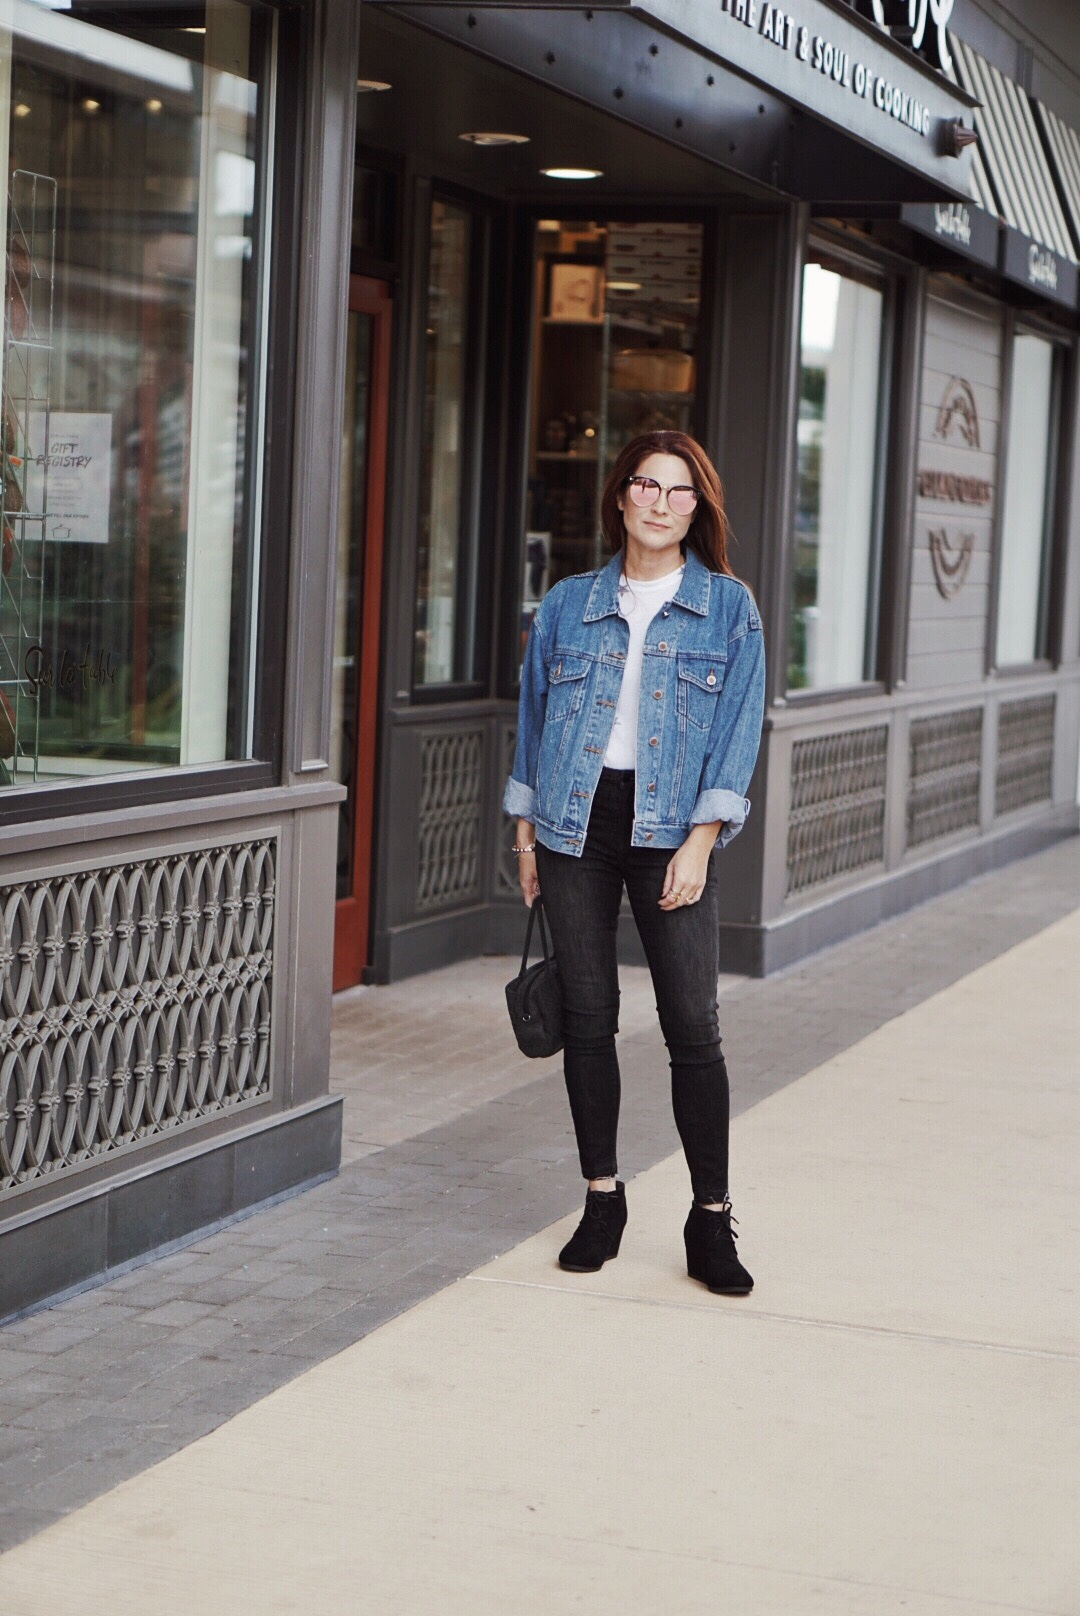 denim on denim inspiration, denim on denim outfit combinations, black skinny jeans, black wedges, bill bass jean jacket, jean jack outfit ideas